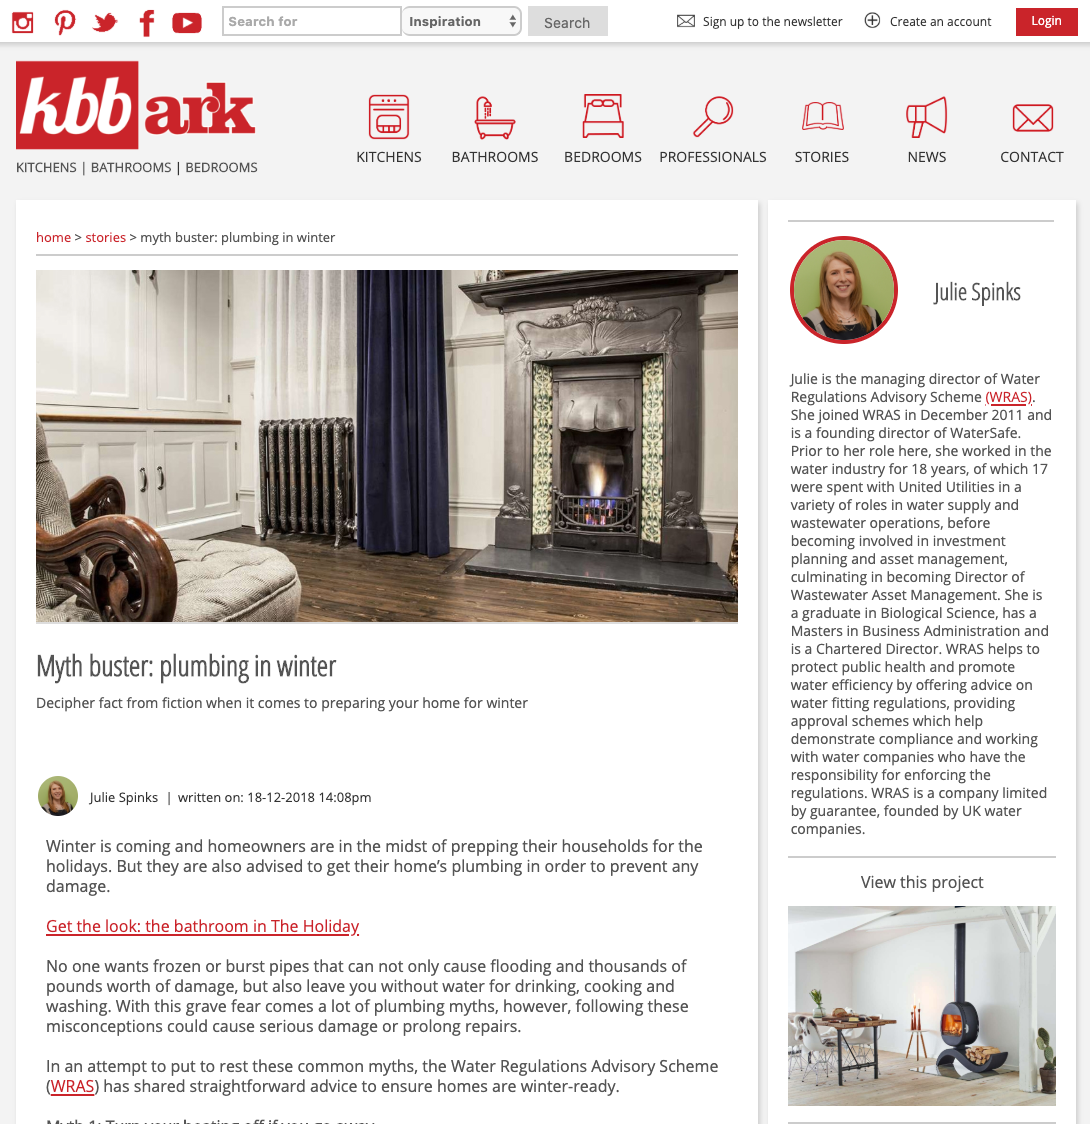 KBBArk Kitchen, Bathroom and Bedroom, December 2018. Article on how to preparing for winter and myth busting.